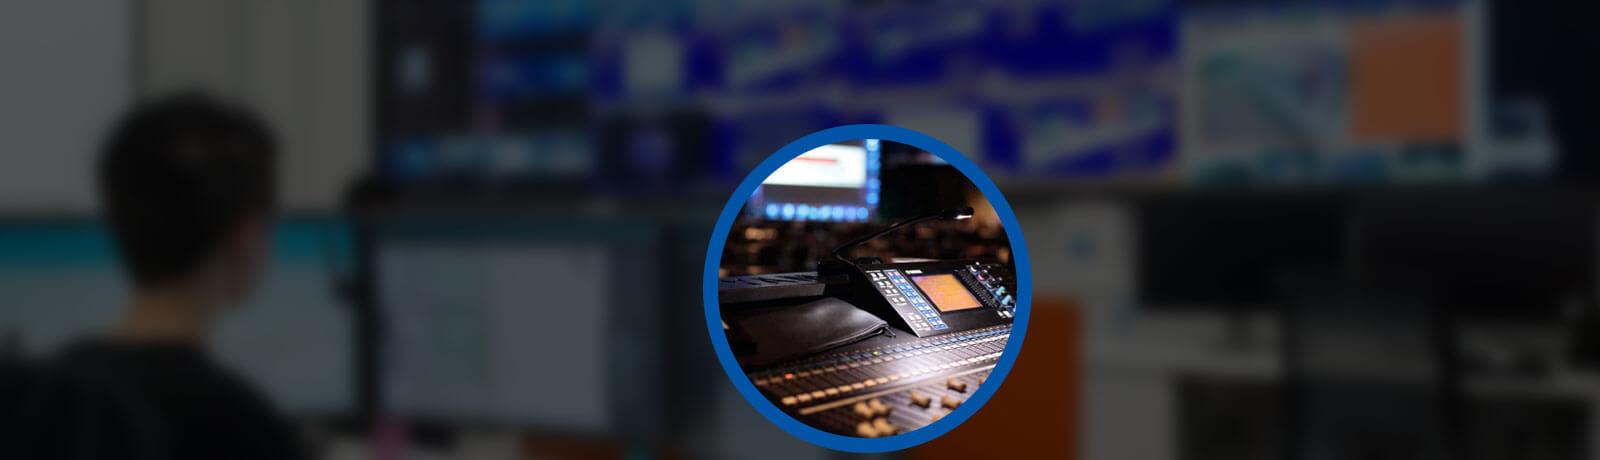 Audiovisual Technology Solutions in UAE